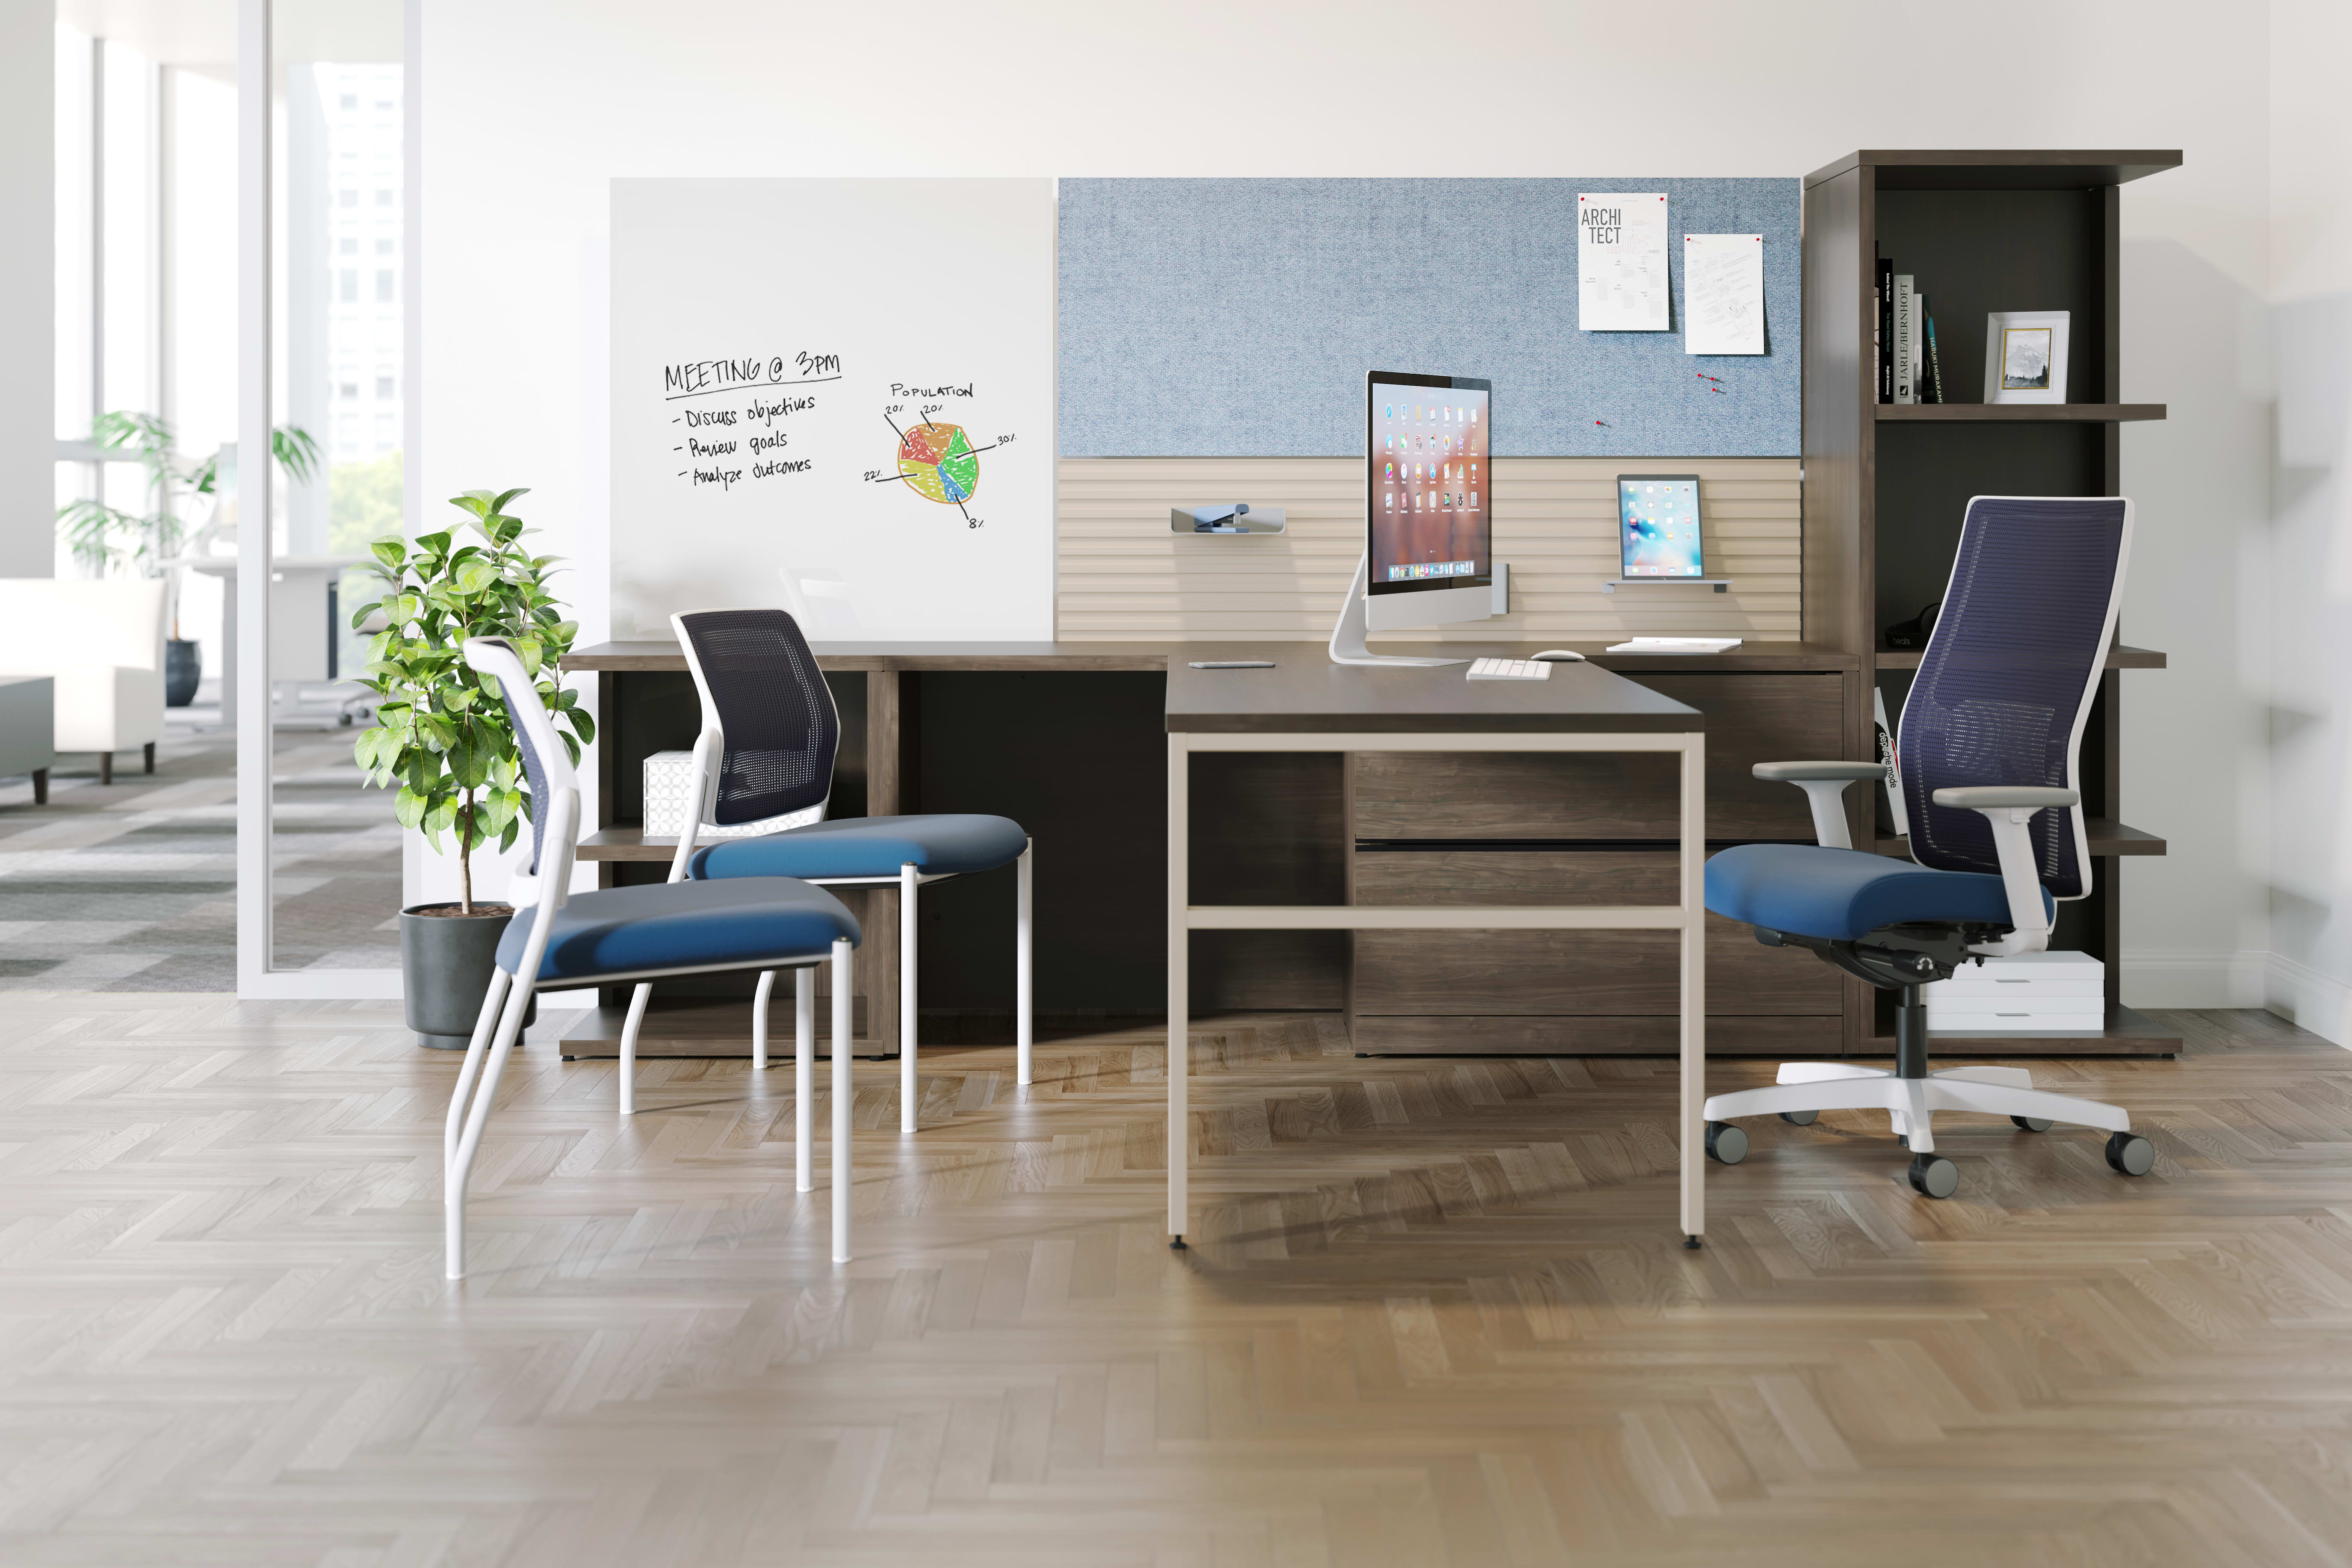 10500 Series Desk with Workwall tiles and Ignition seating